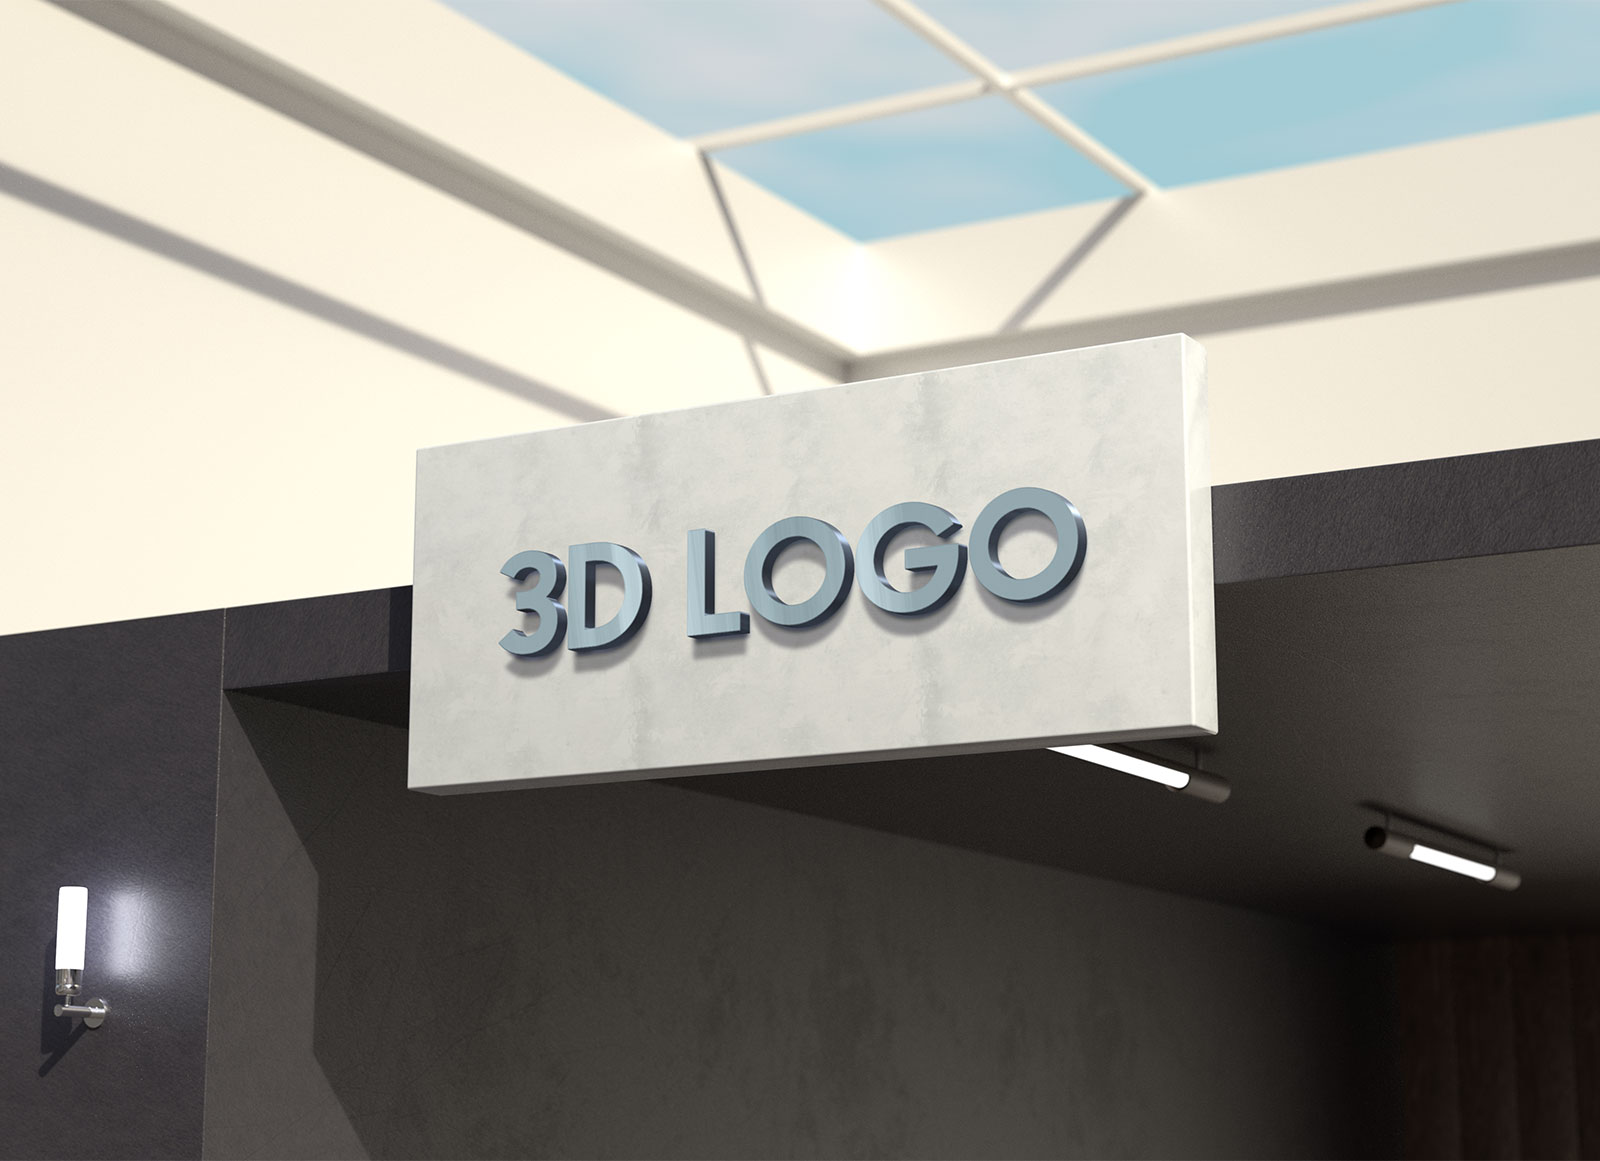 Free-Office-Store-Building-Fascia-Logo-Mockup-PSD